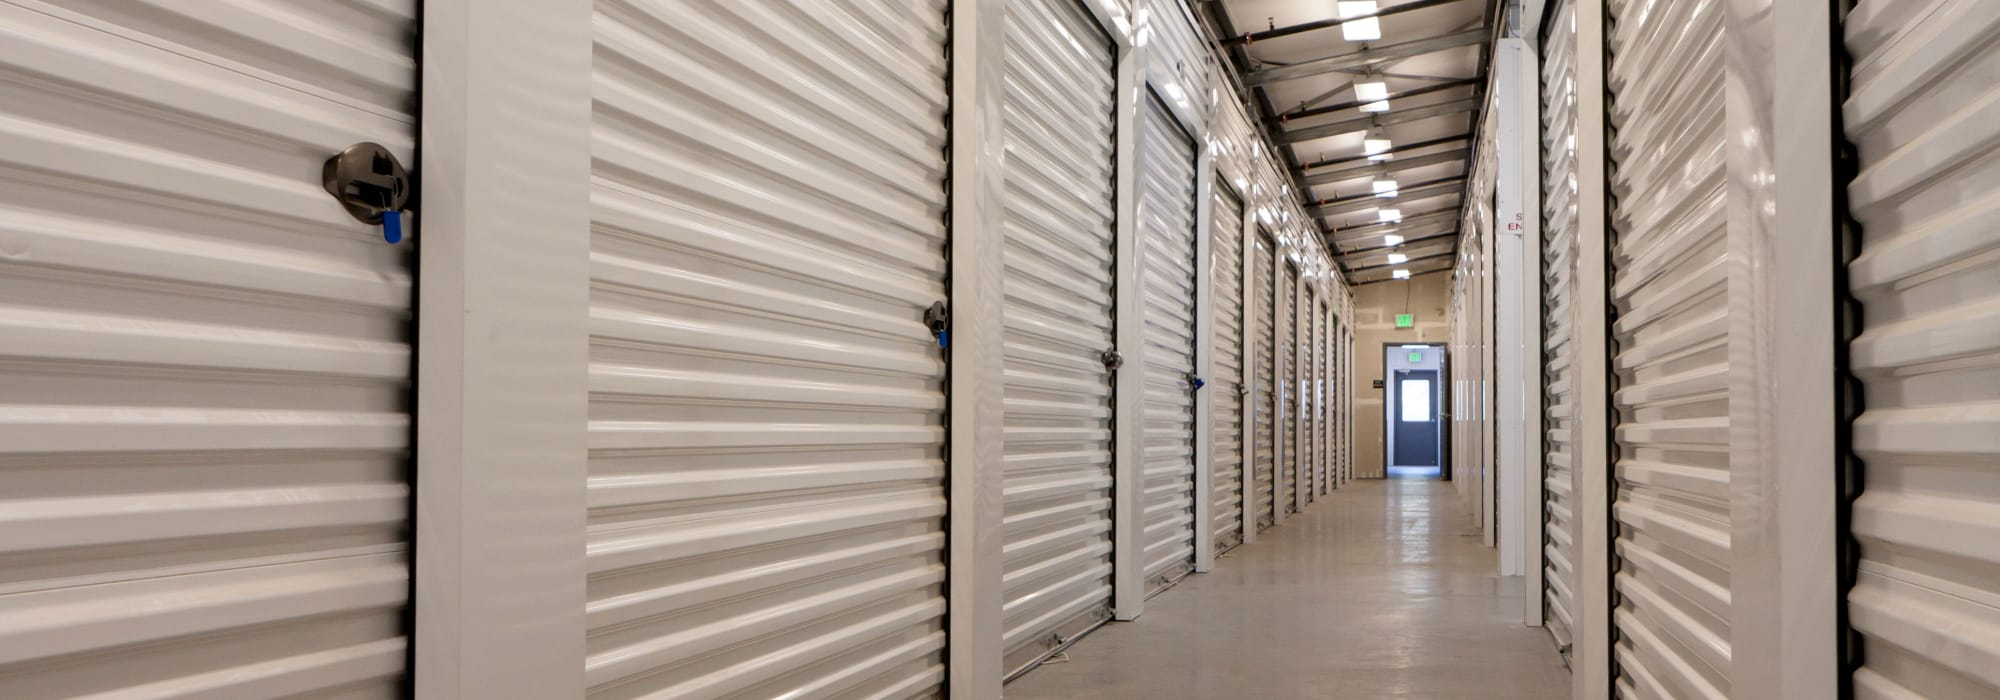 Mini Storage Depot in Chattanooga, Tennessee